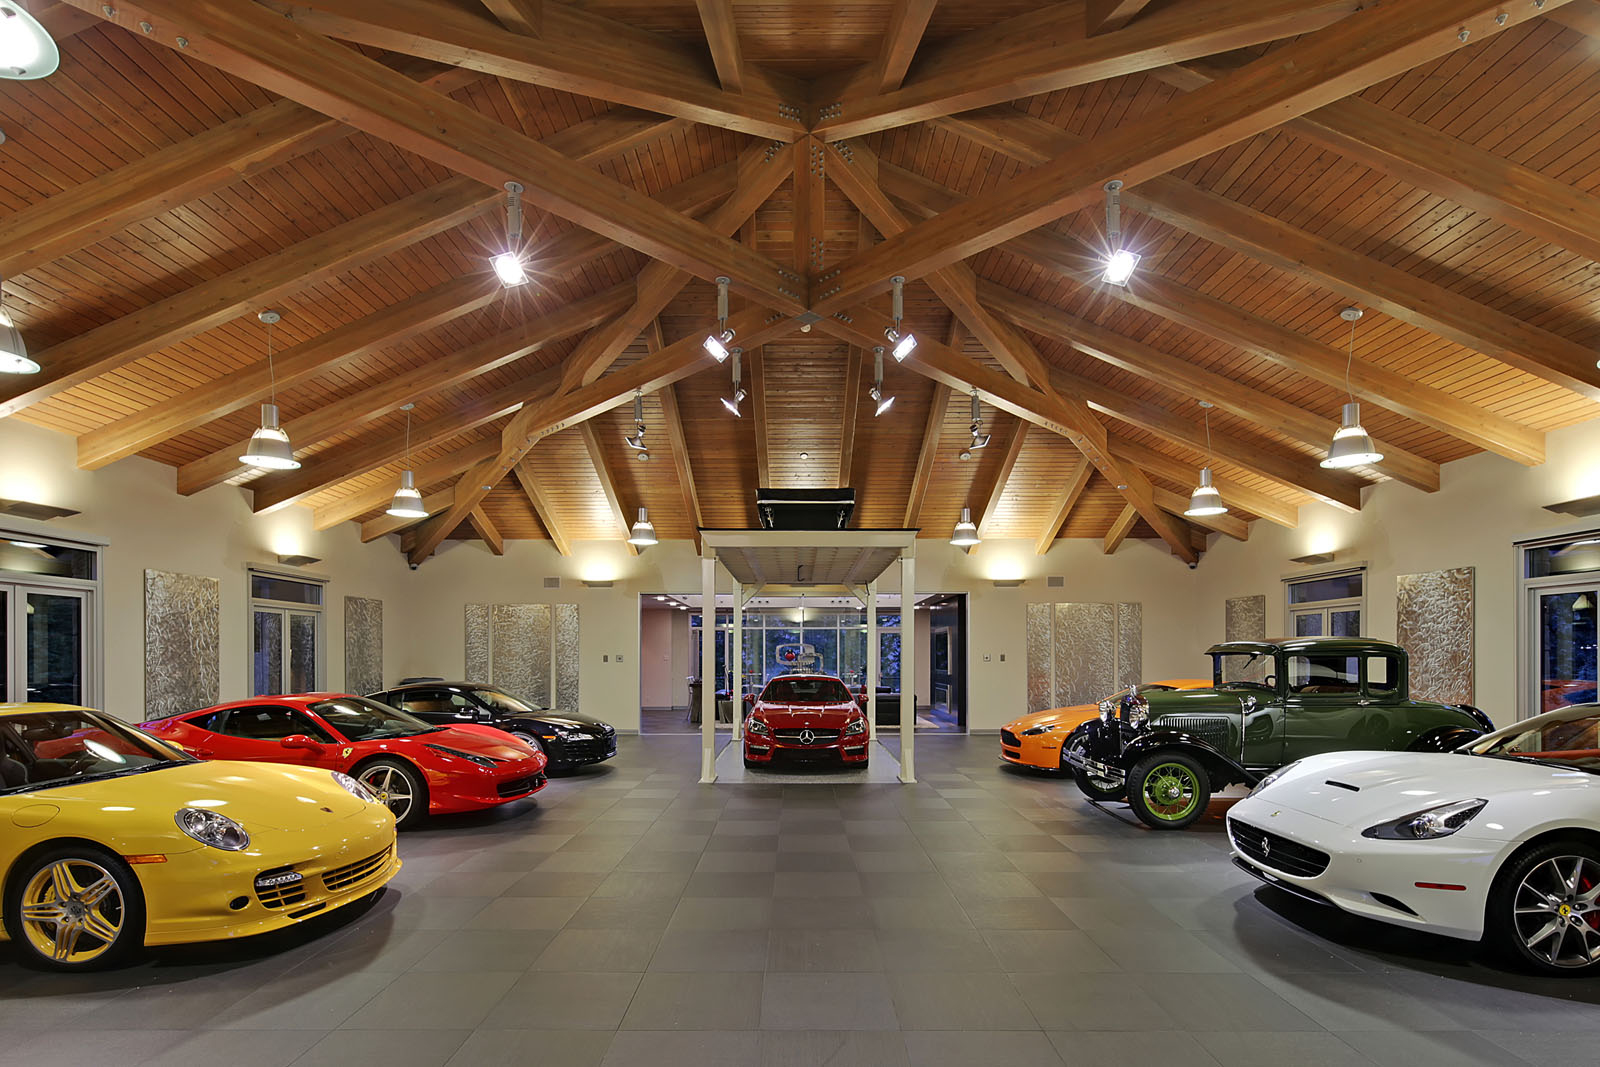 La maison id ale pour tout passionn d 39 automobile french driver - Garage de voiture de collection ...